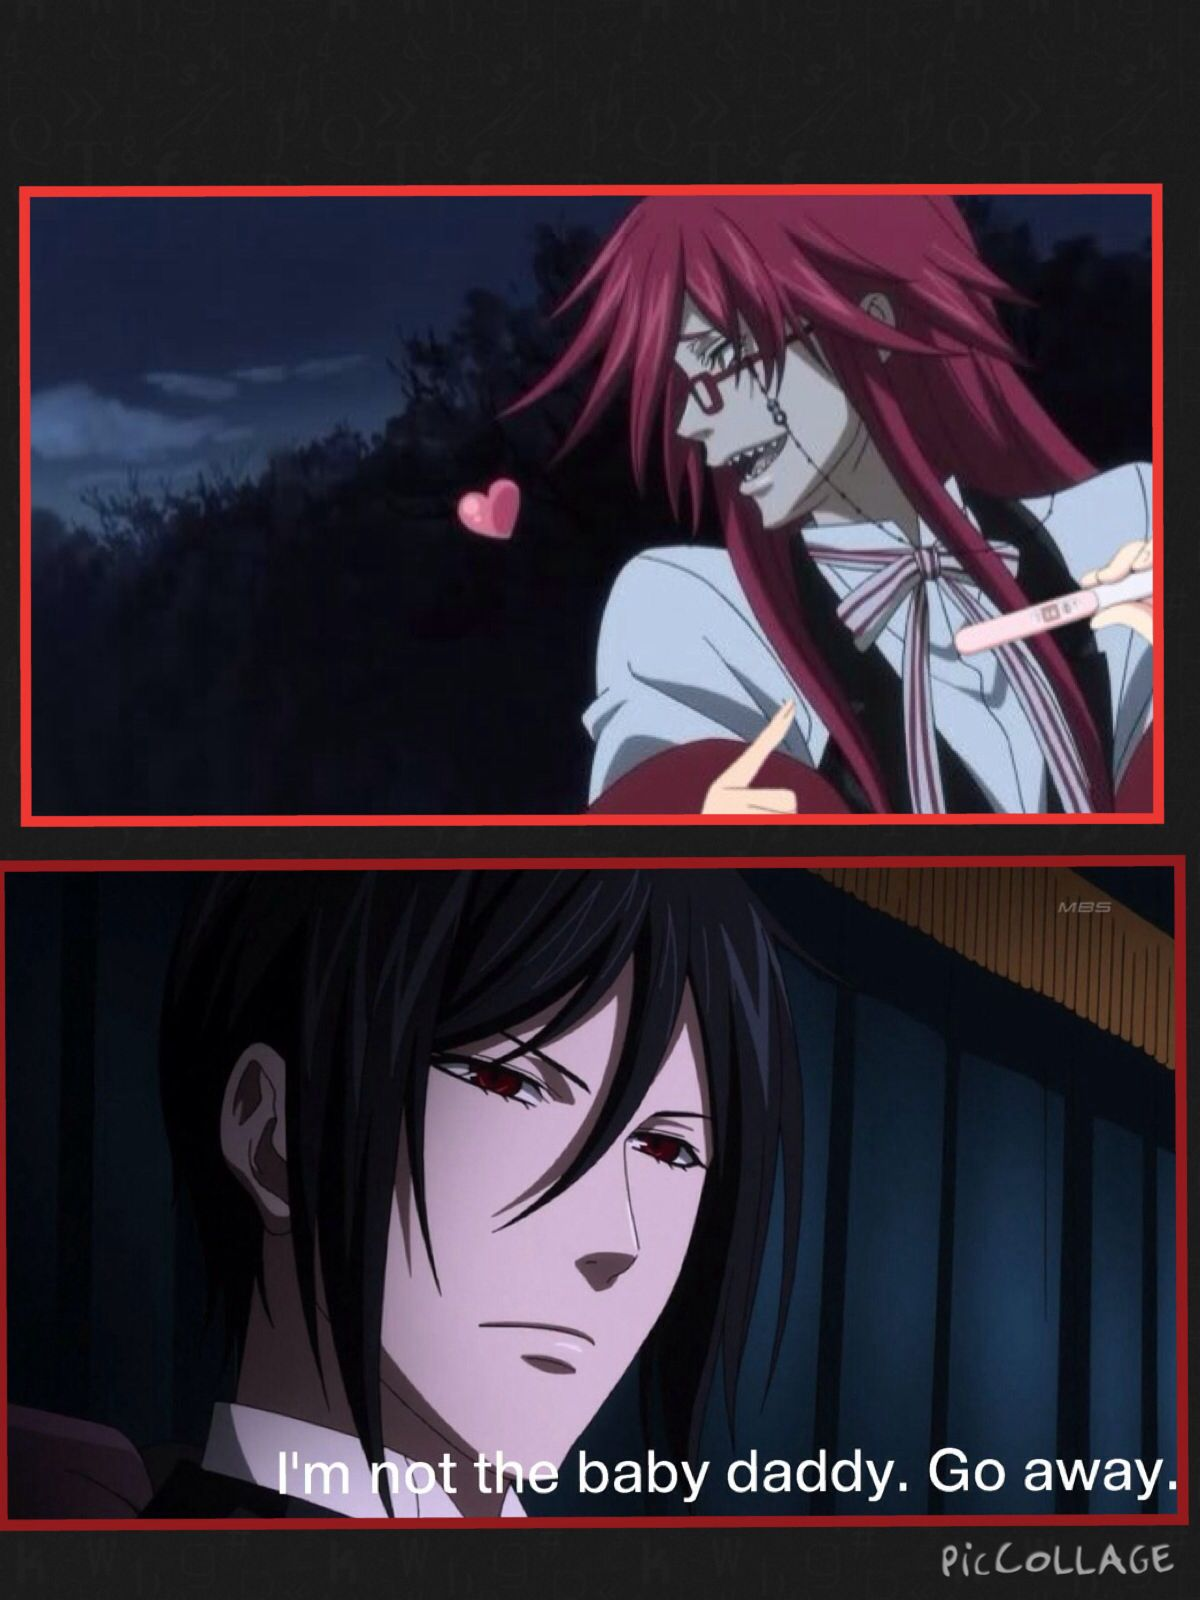 Anime Characters Pregnant Reader : Grell sebastian anime pregnancy meme made by moi one